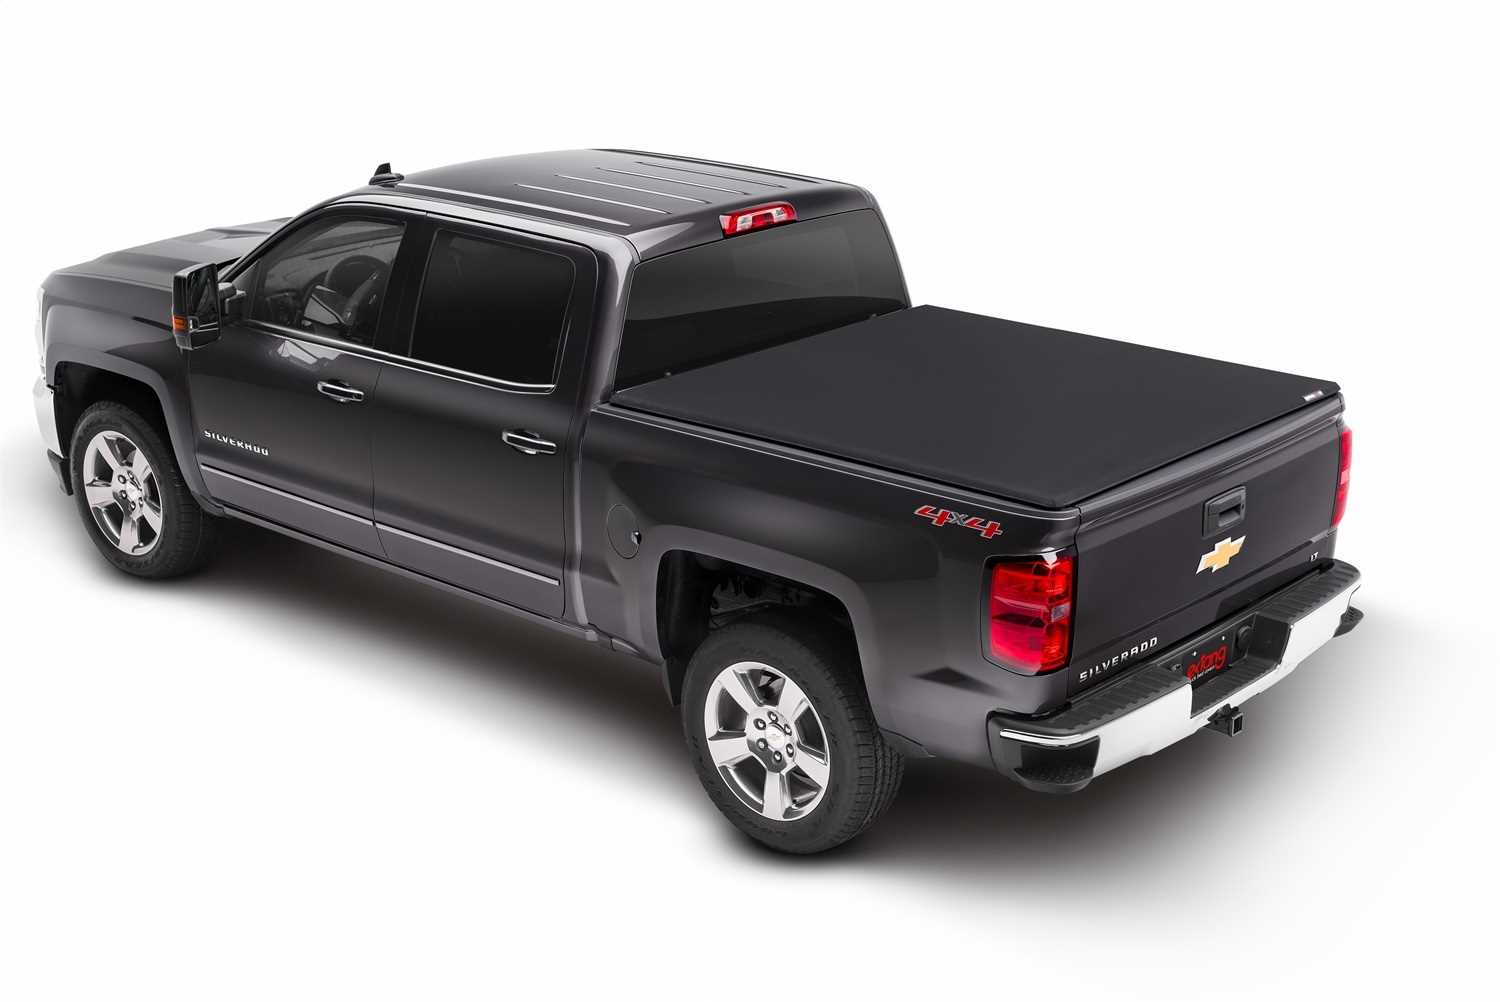 94972 Extang Trifecta Signature 2.0 Tonneau Cover